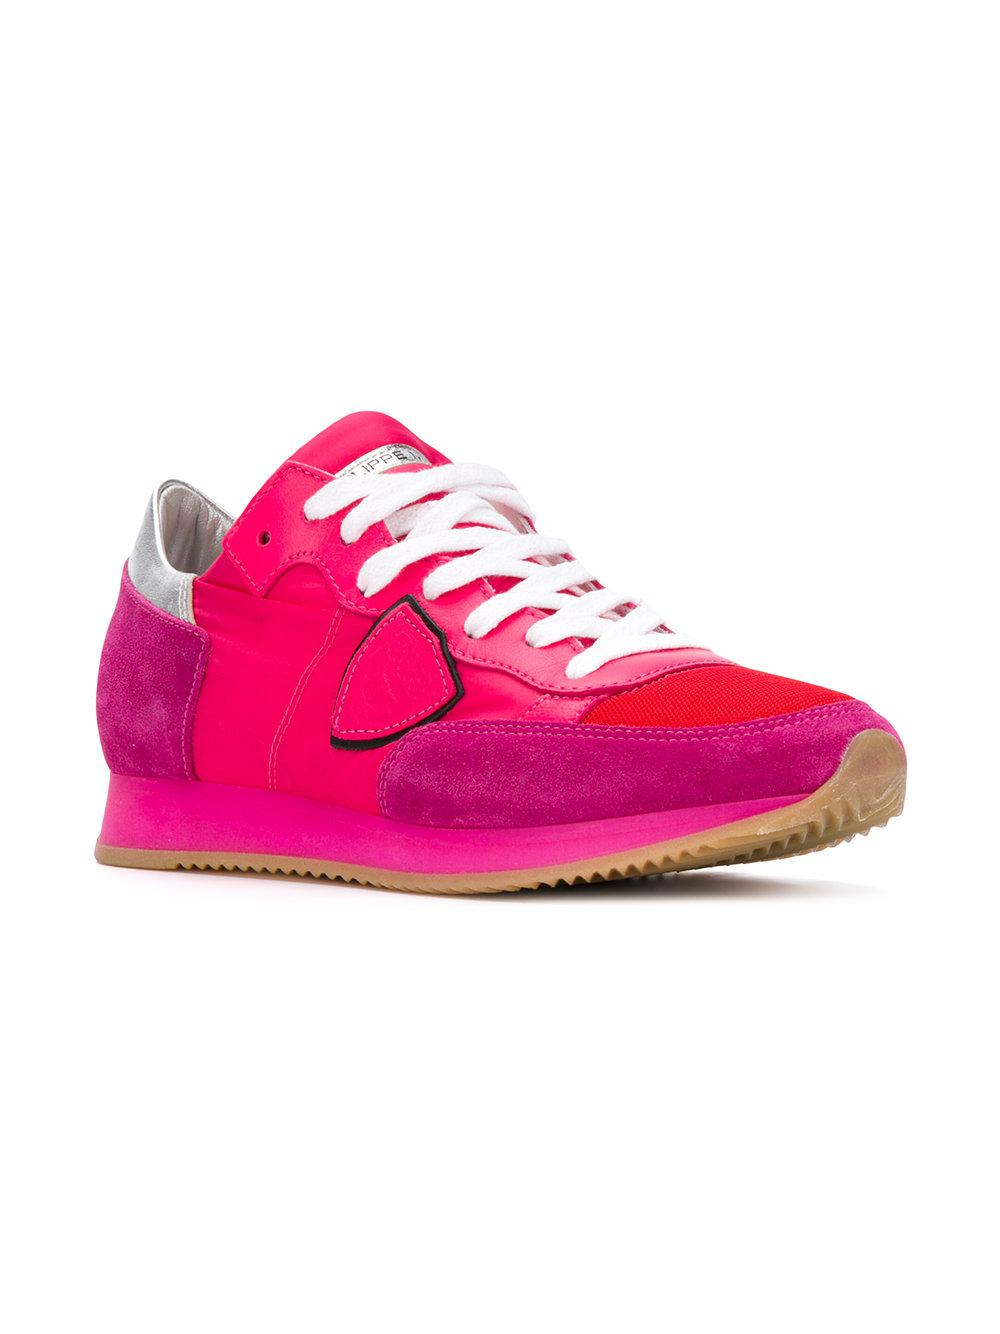 Philippe Model Leather Tropez Sneakers in Pink & Purple (Pink)